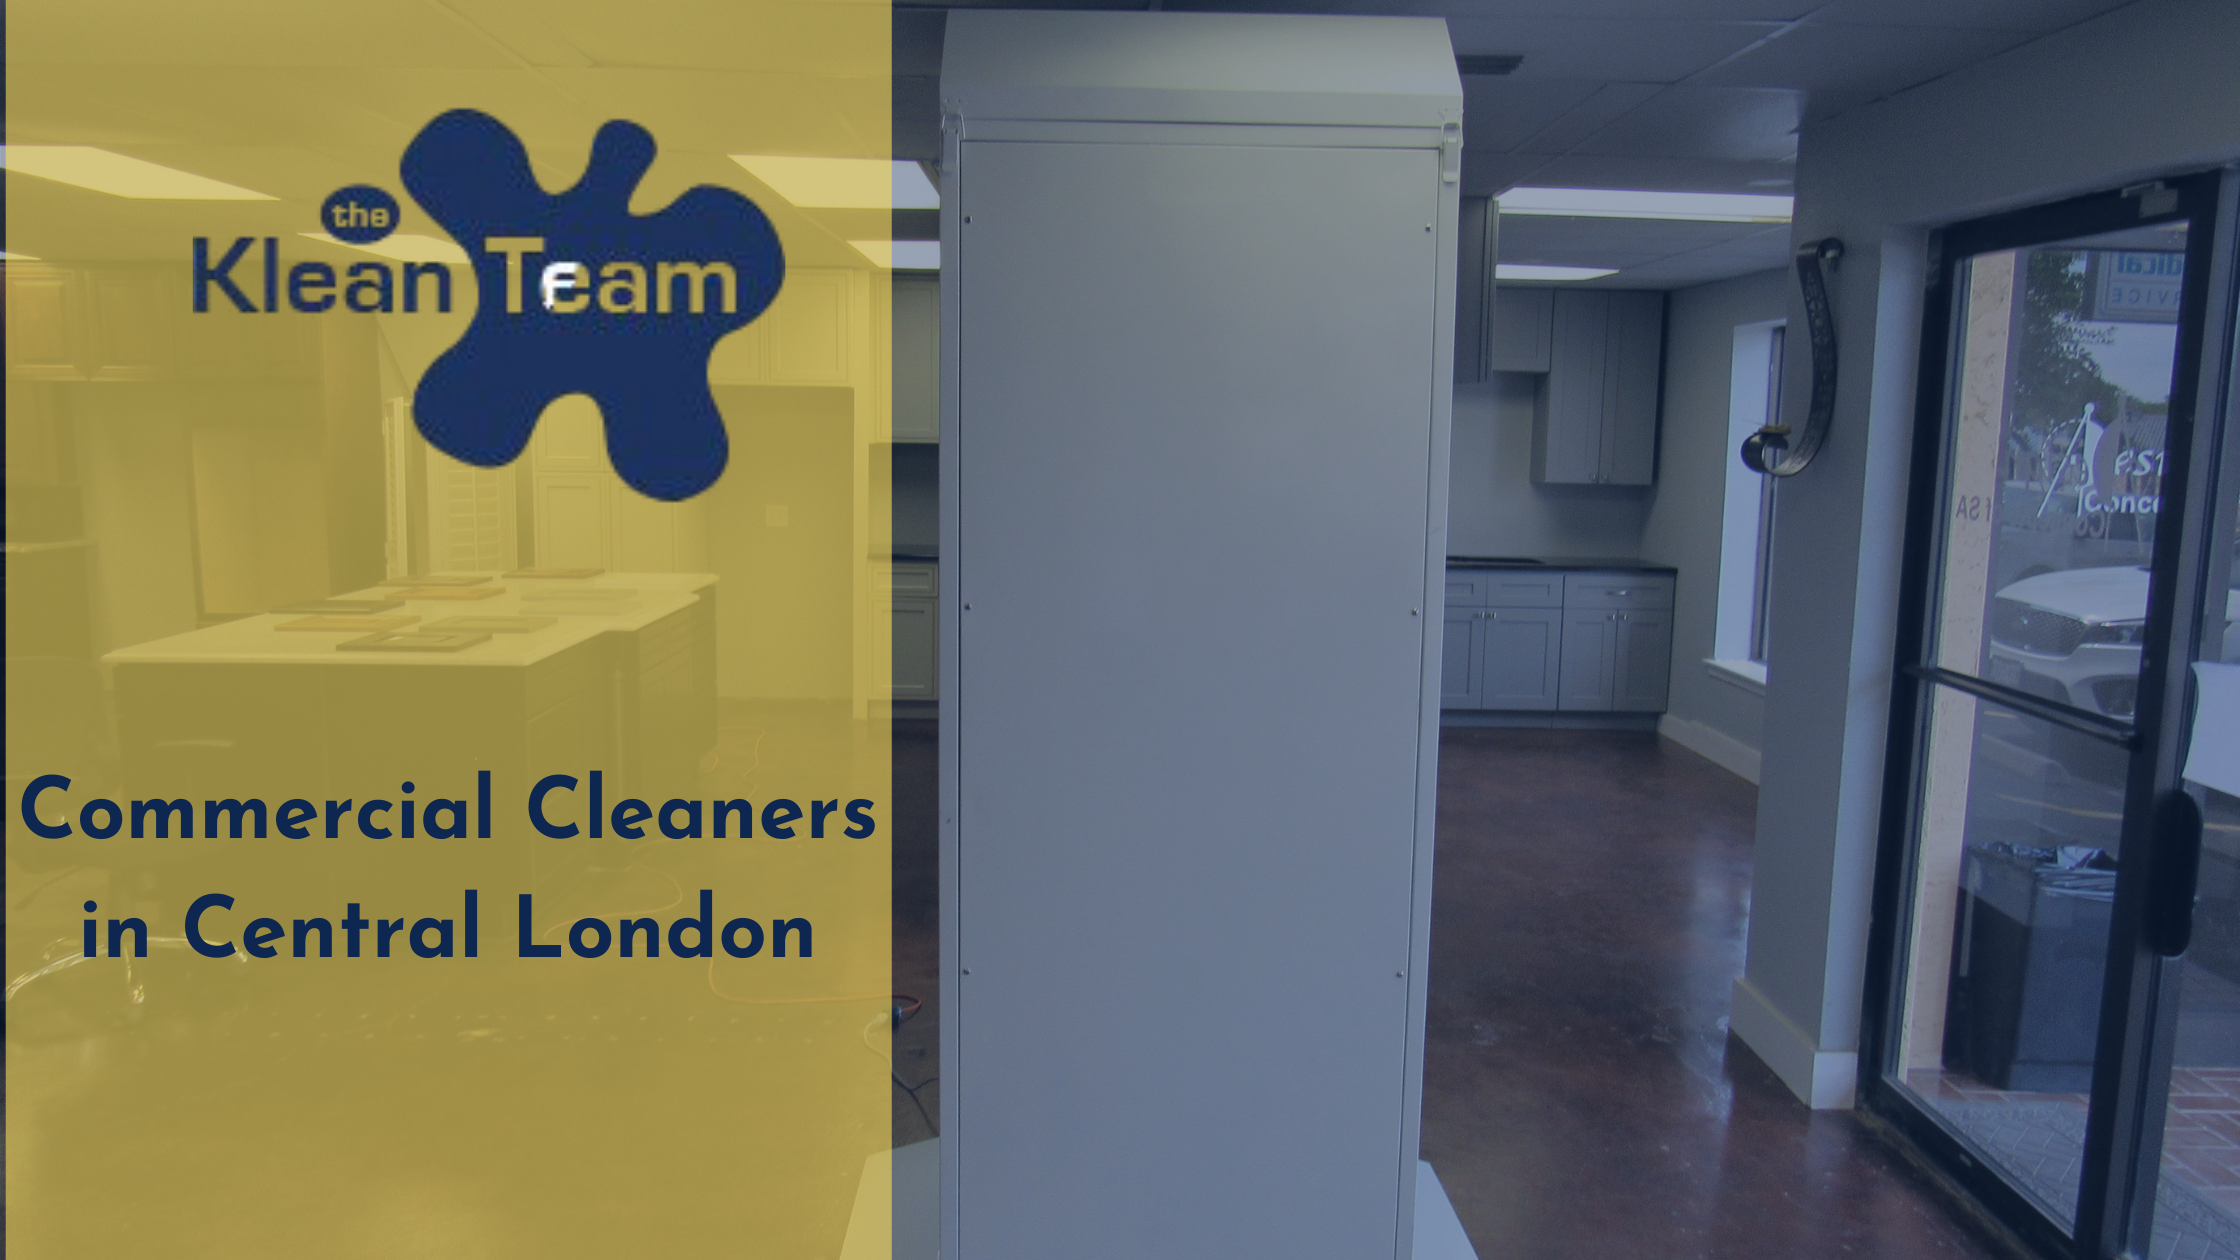 Commercial Cleaners in Central London